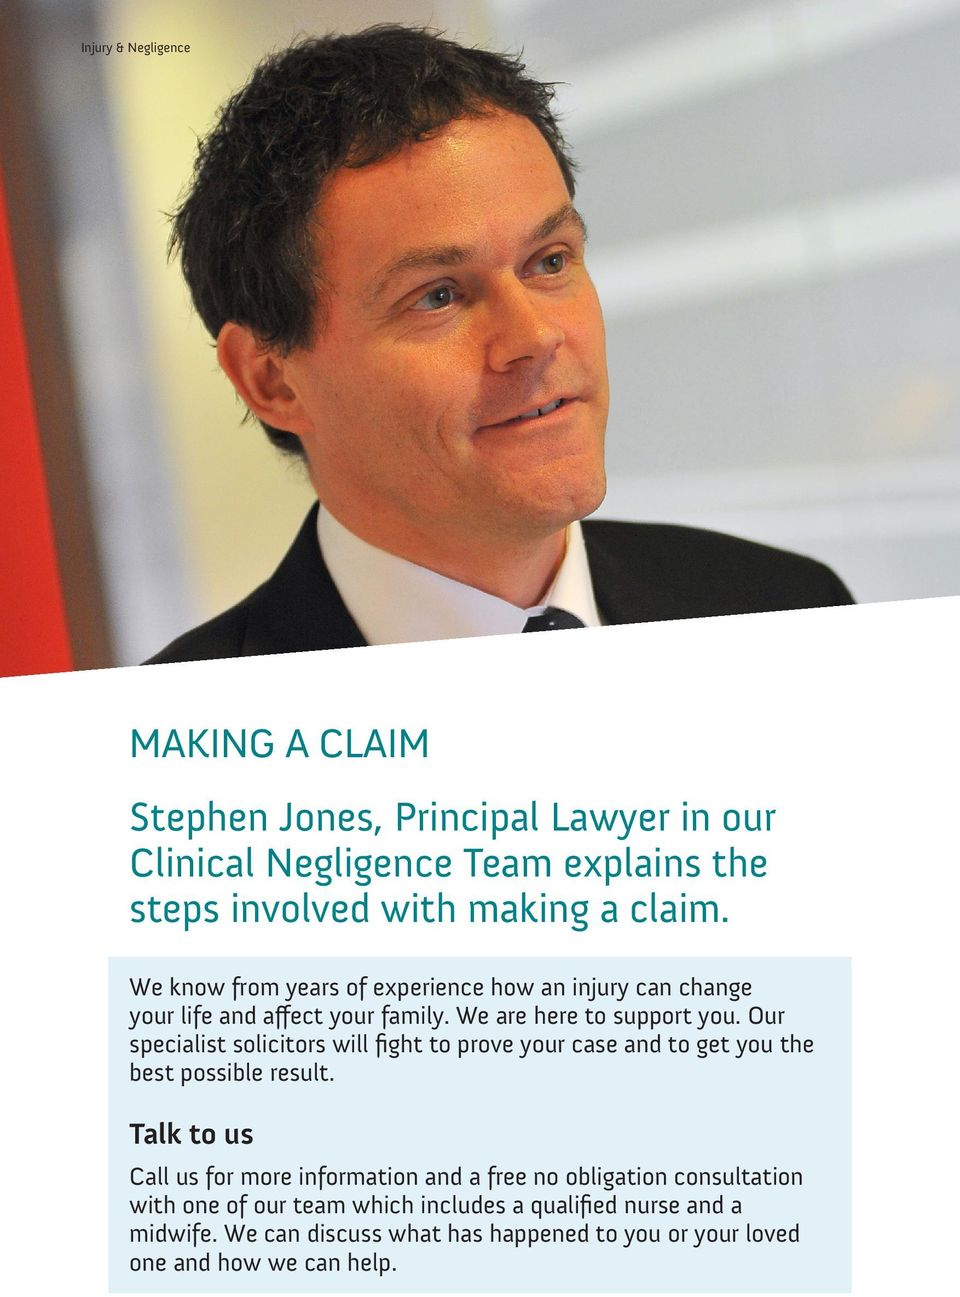 Our specialist solicitors will fight to prove your case and to get you the best possible result.